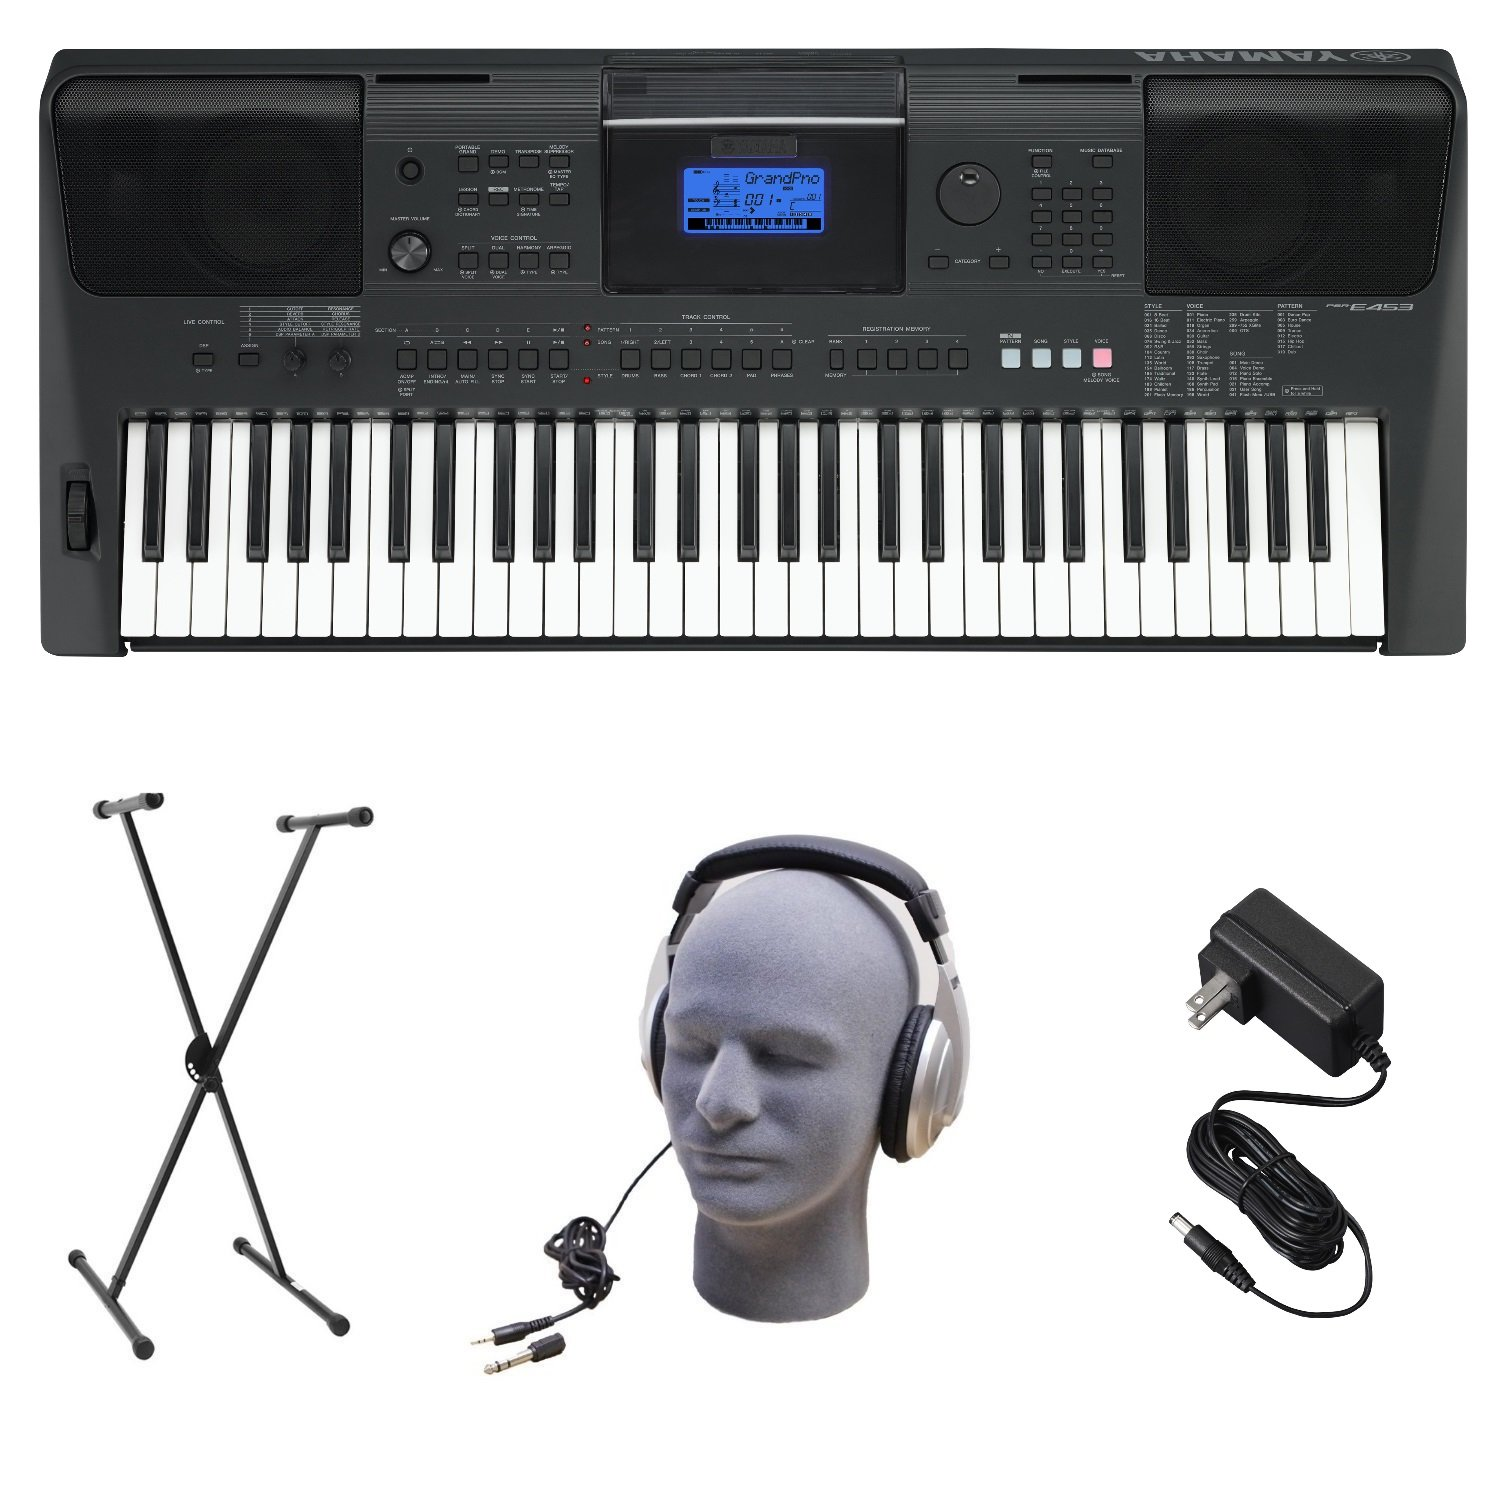 Yamaha PSRE453 Portable Keyboard with Headphones, Power Supply, & X-Style Stand